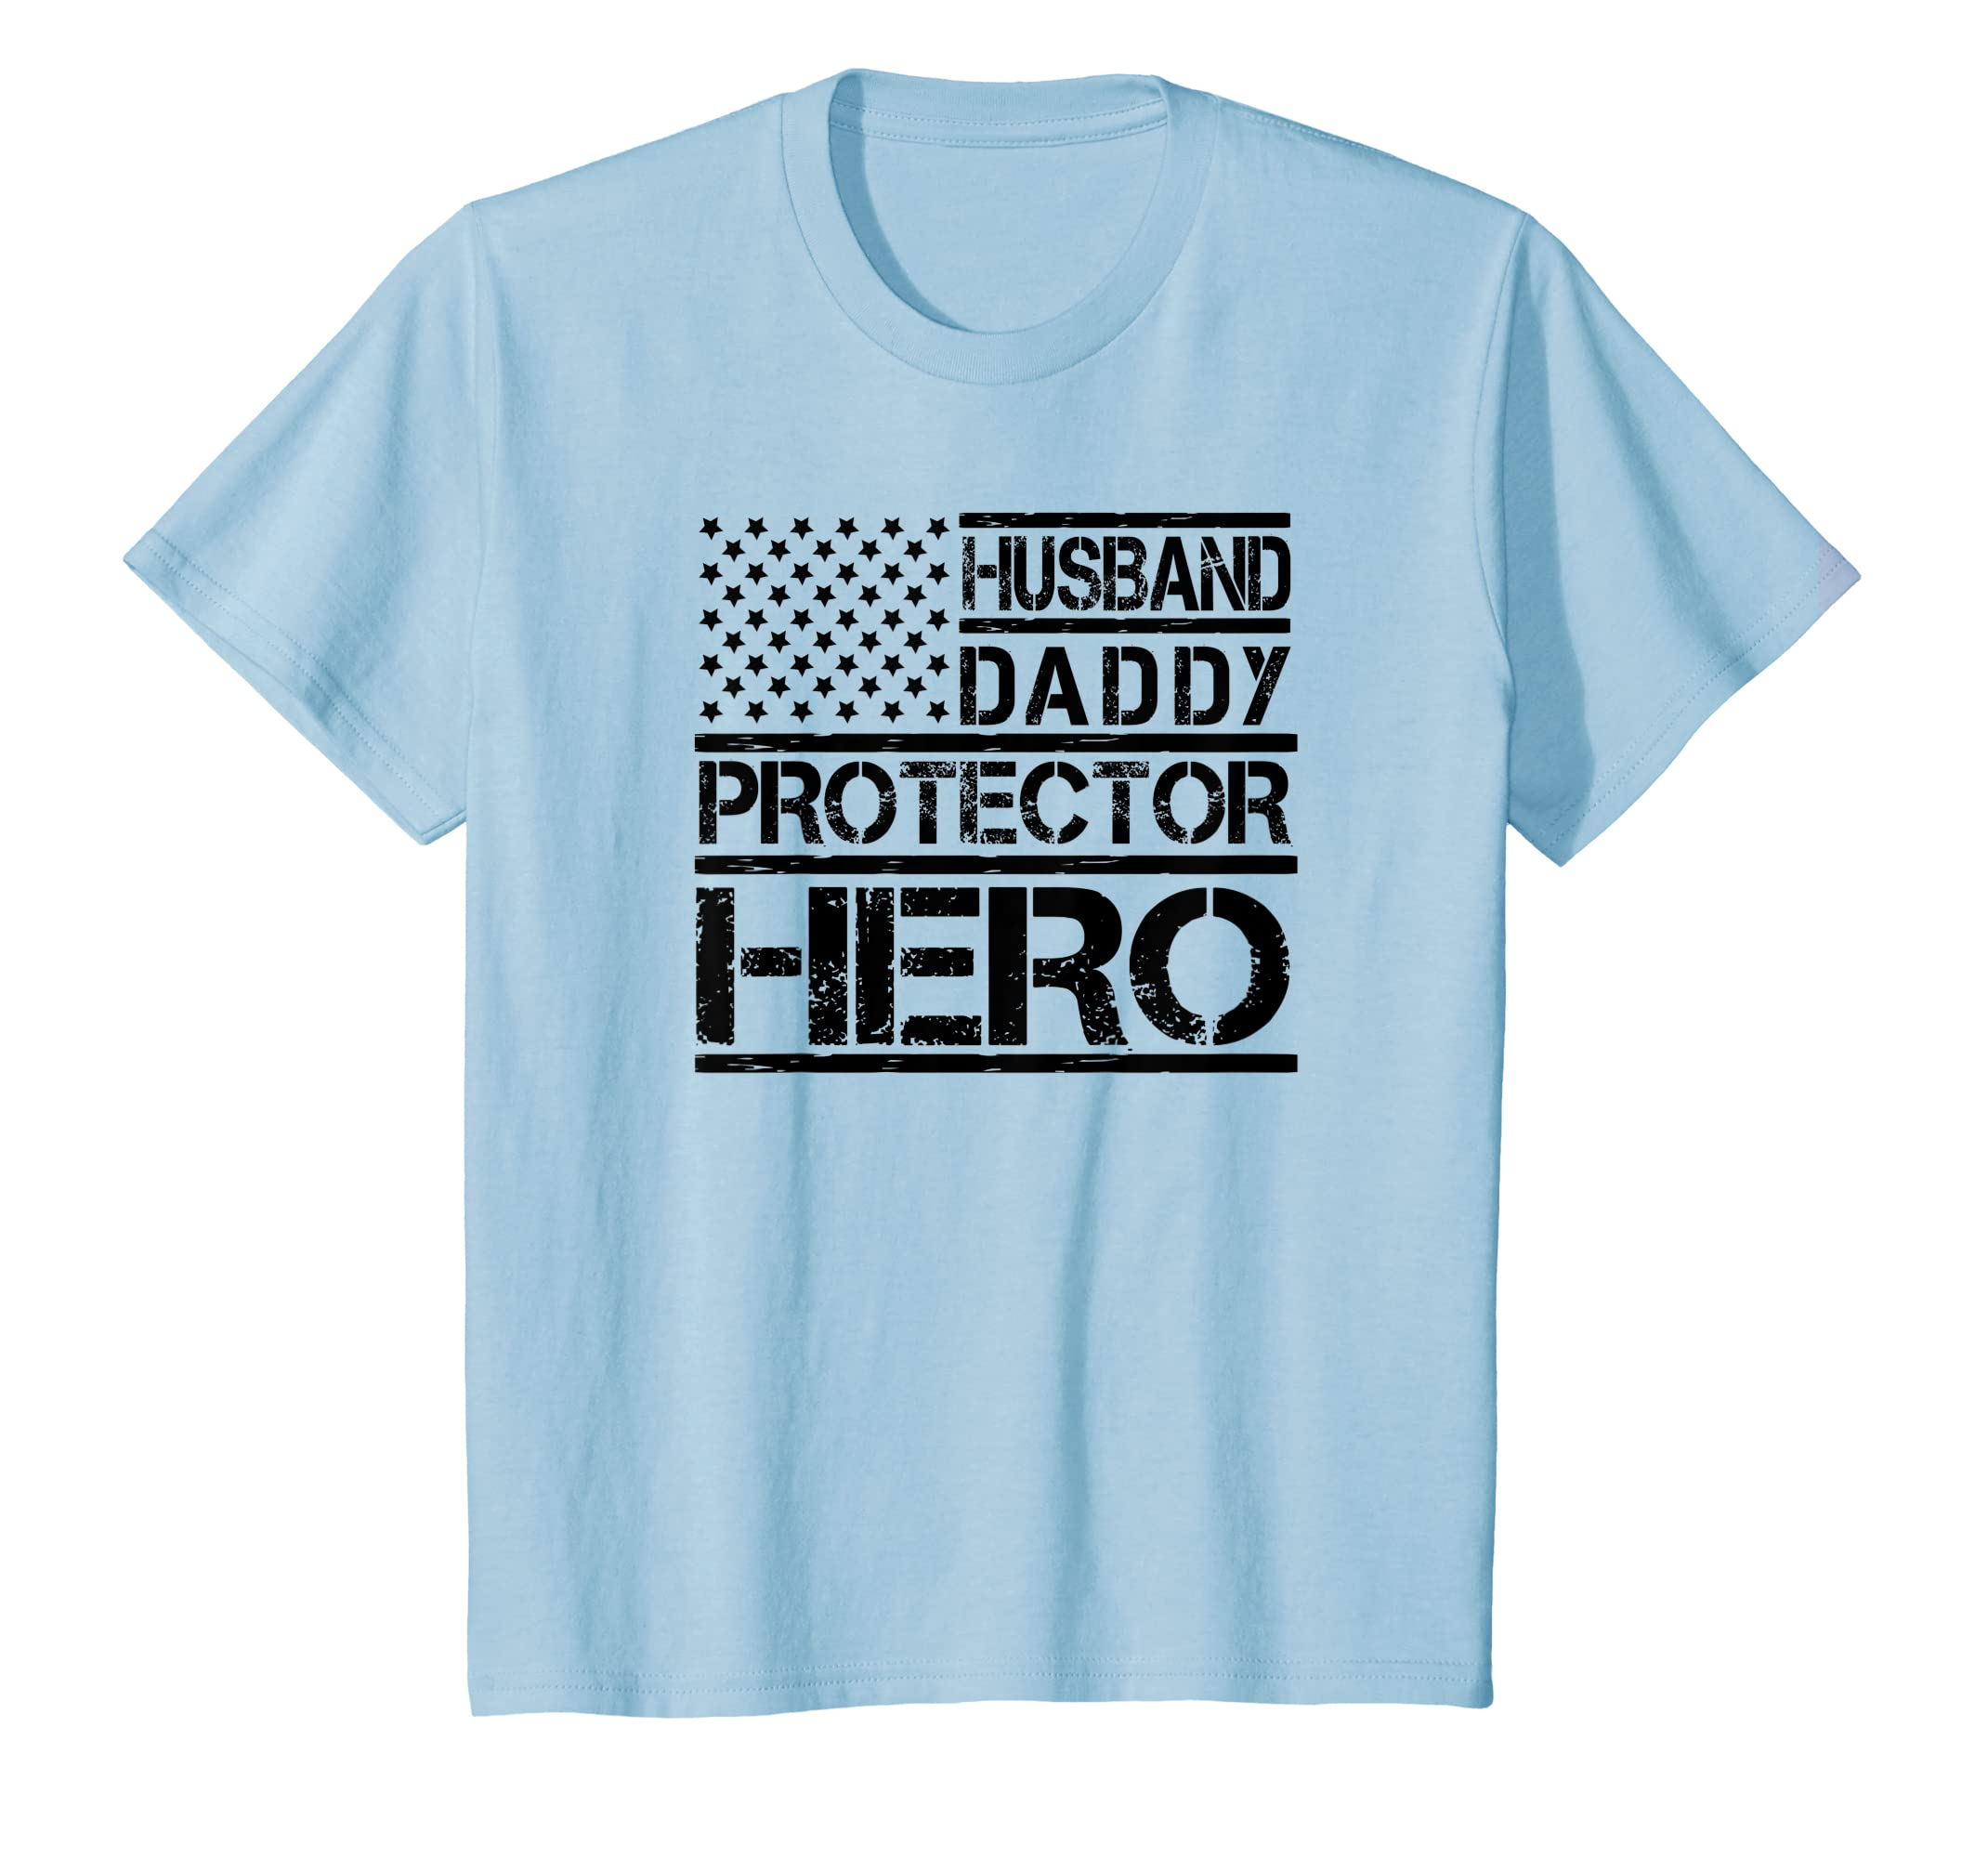 ebb579a2dd1 Amazon.com  Husband Daddy Protector Hero Shirt Fathers Day Birthday Gift   Clothing